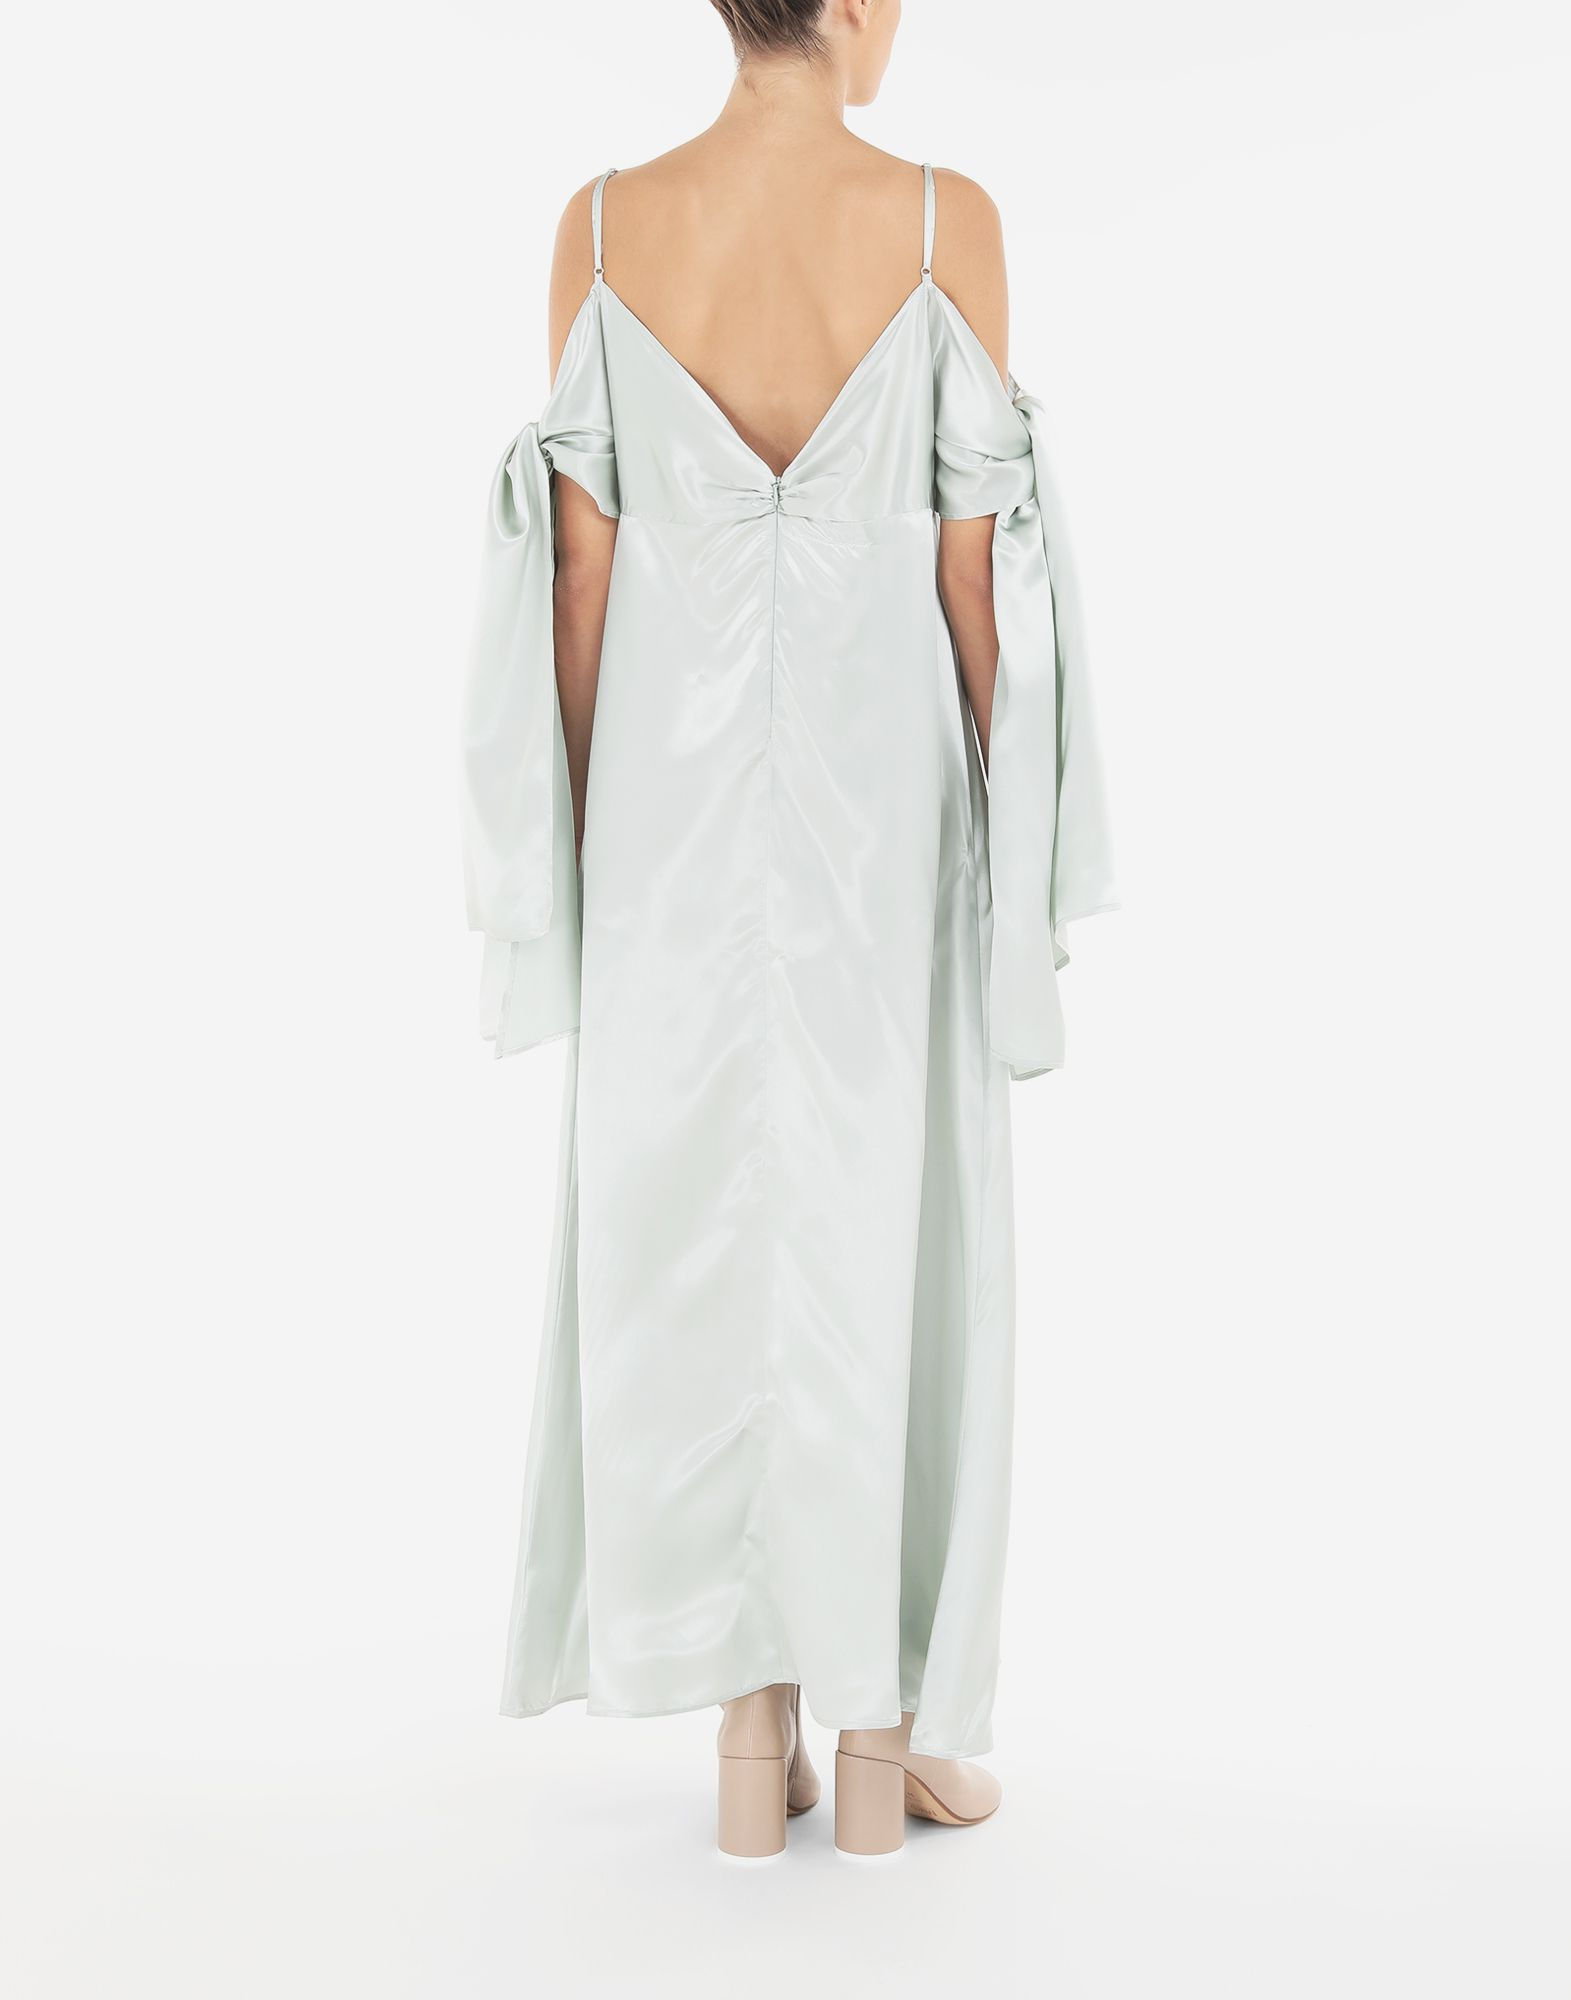 MM6 MAISON MARGIELA Multi-wear satin dress Dress Woman e